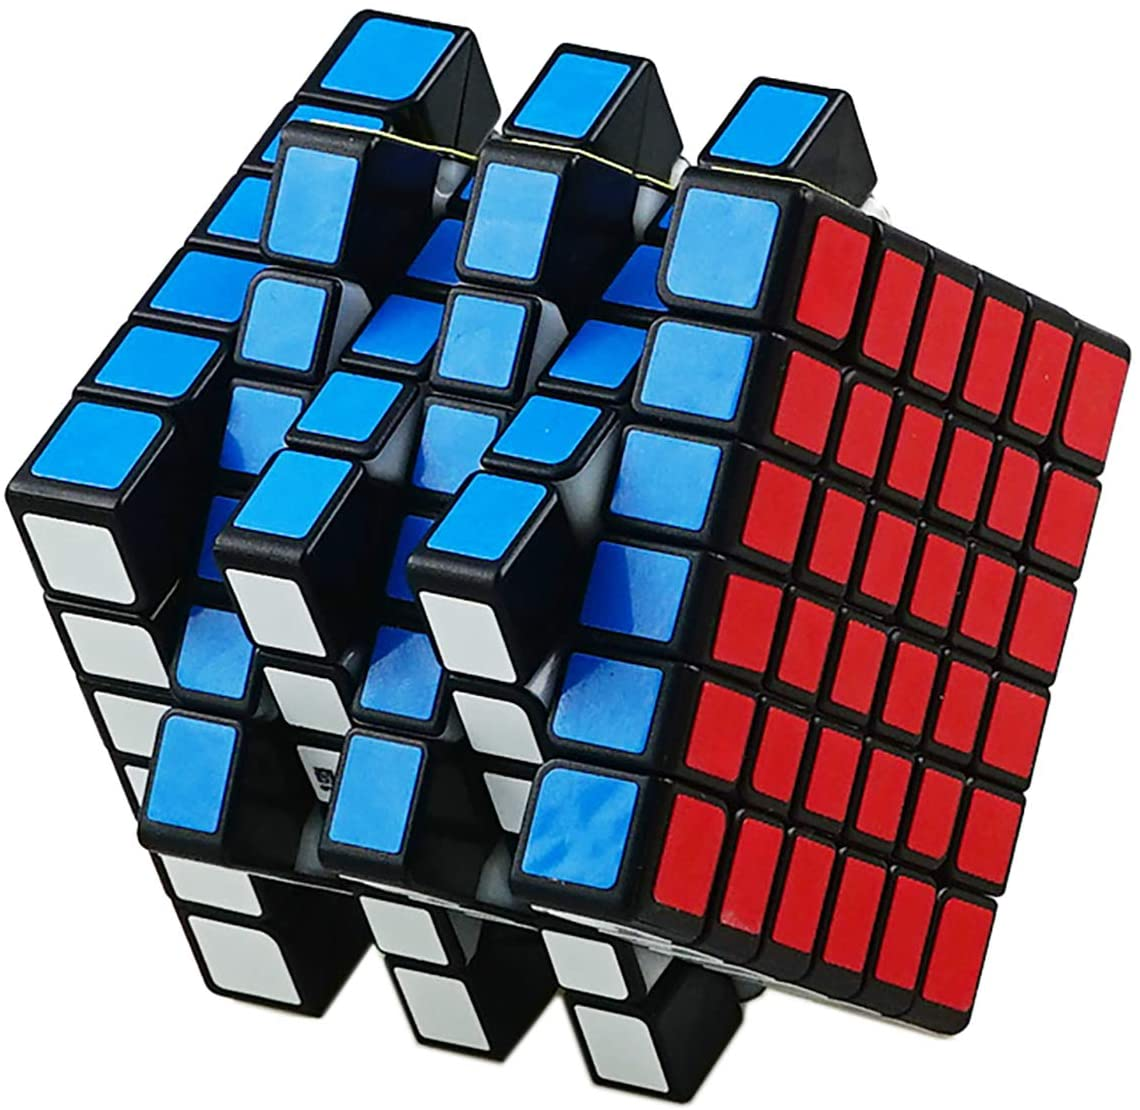 Ahyuan 6x6 Speed Cube Qiyi 6 by 6 Speed Cube 6x6x6 Magic Cube Puzzle Game Toy Black for Teenagers and Adults